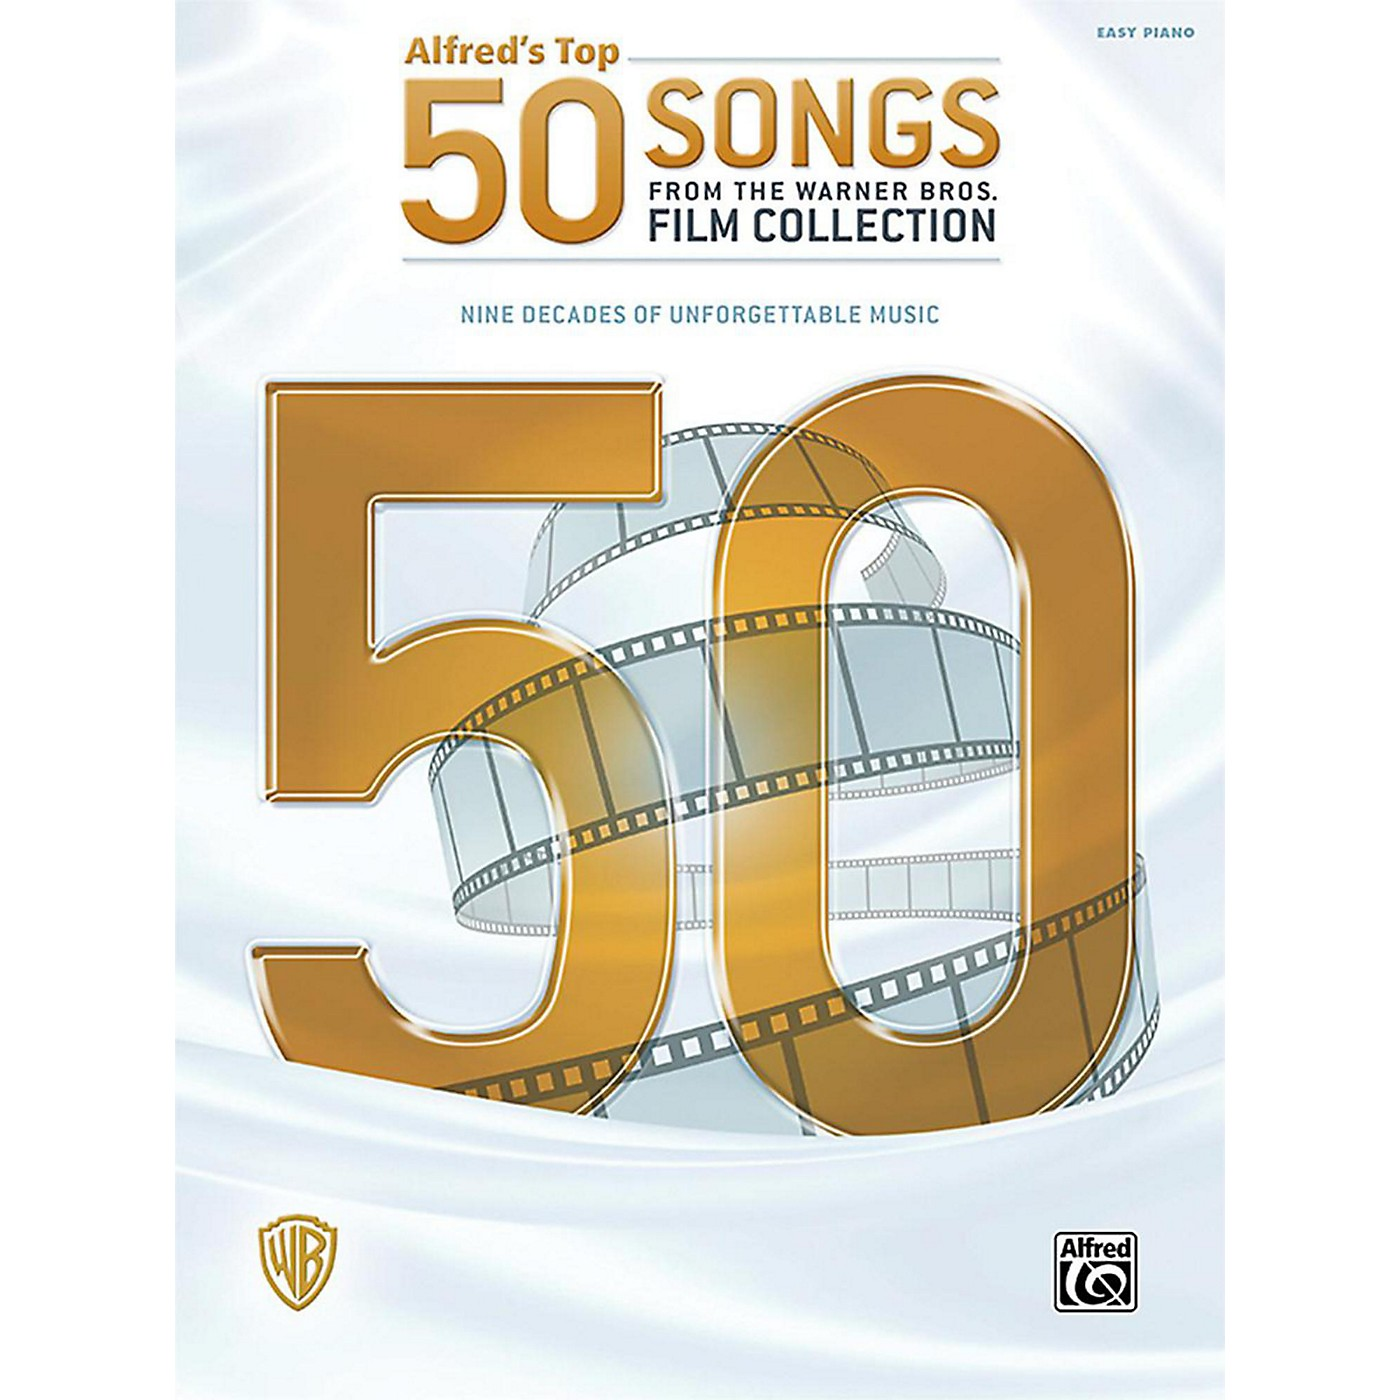 Alfred Alfred's Top 50 Songs from the Warner Bros. Film Collection Easy Piano Songbook thumbnail